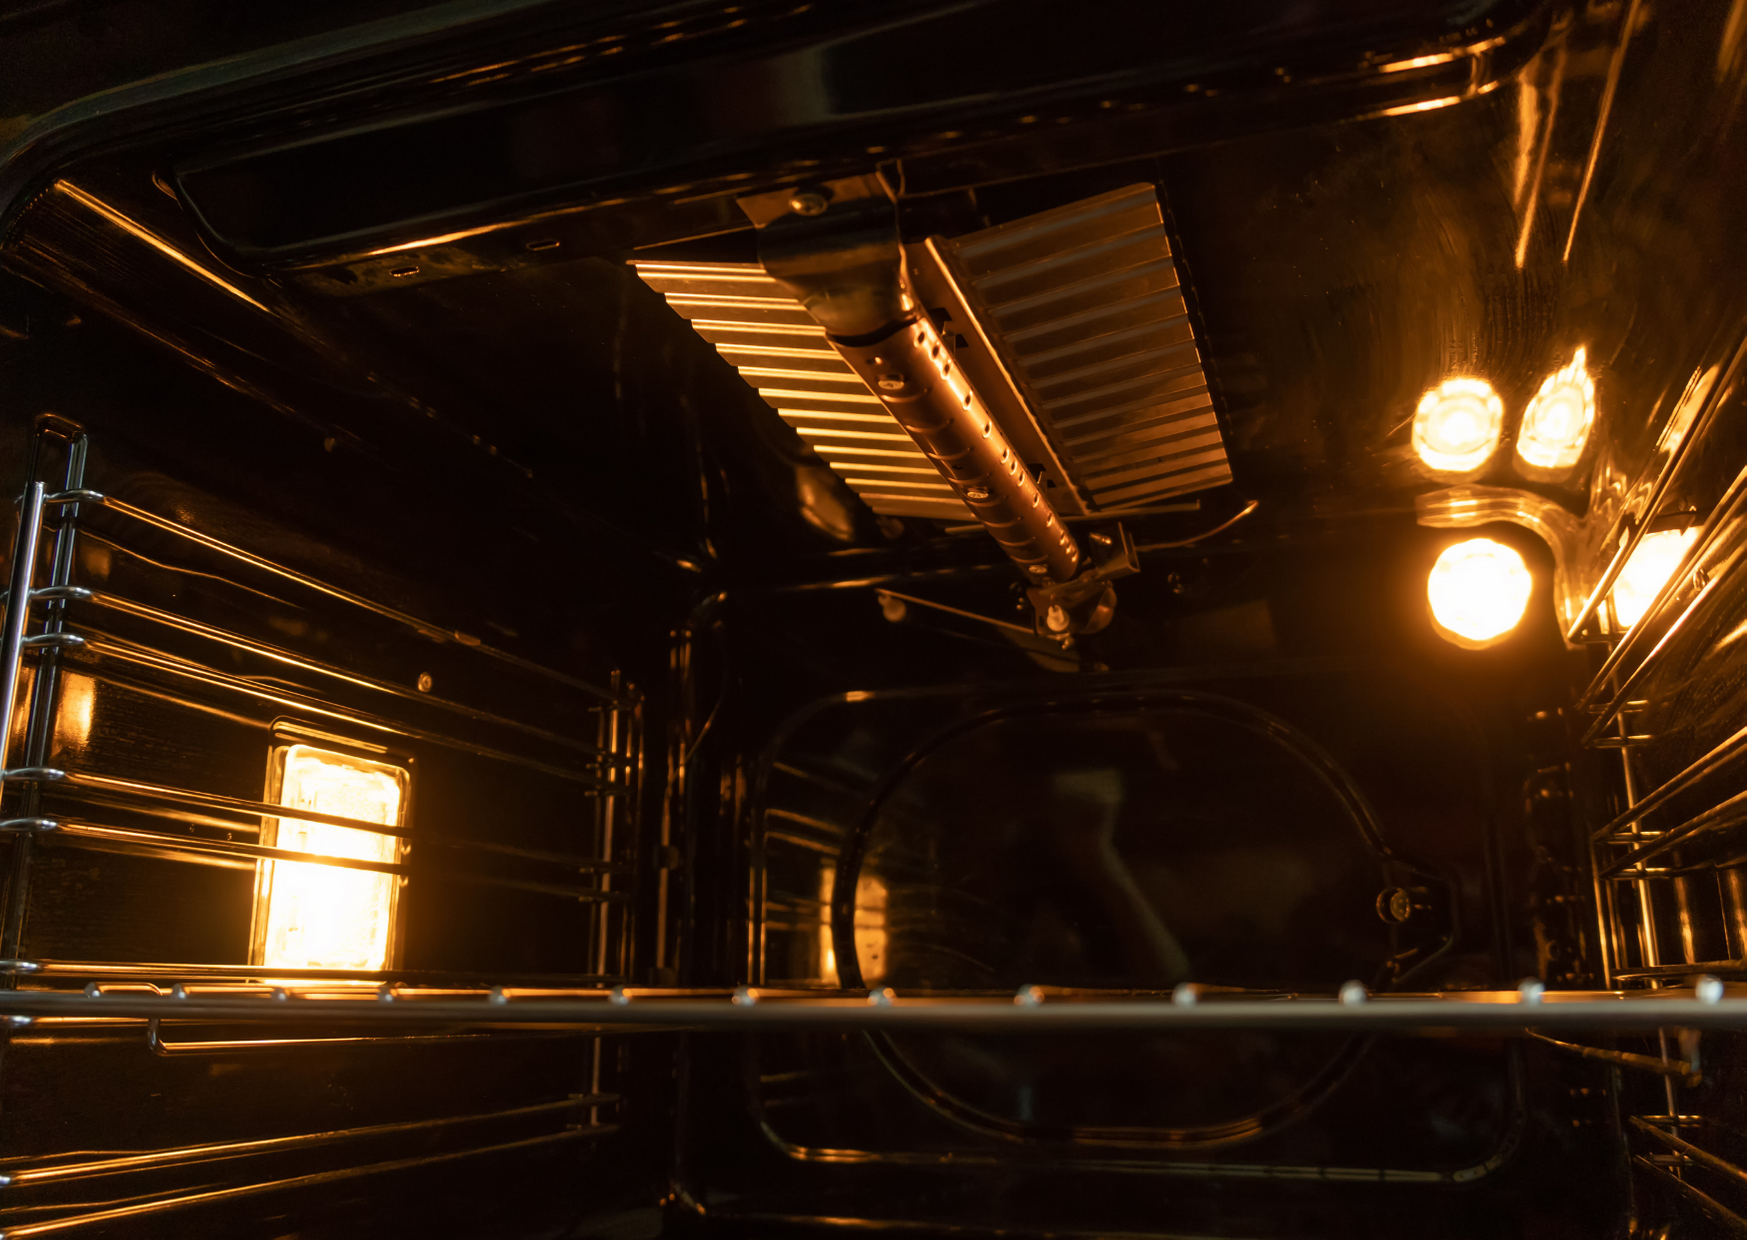 Inside the gas oven